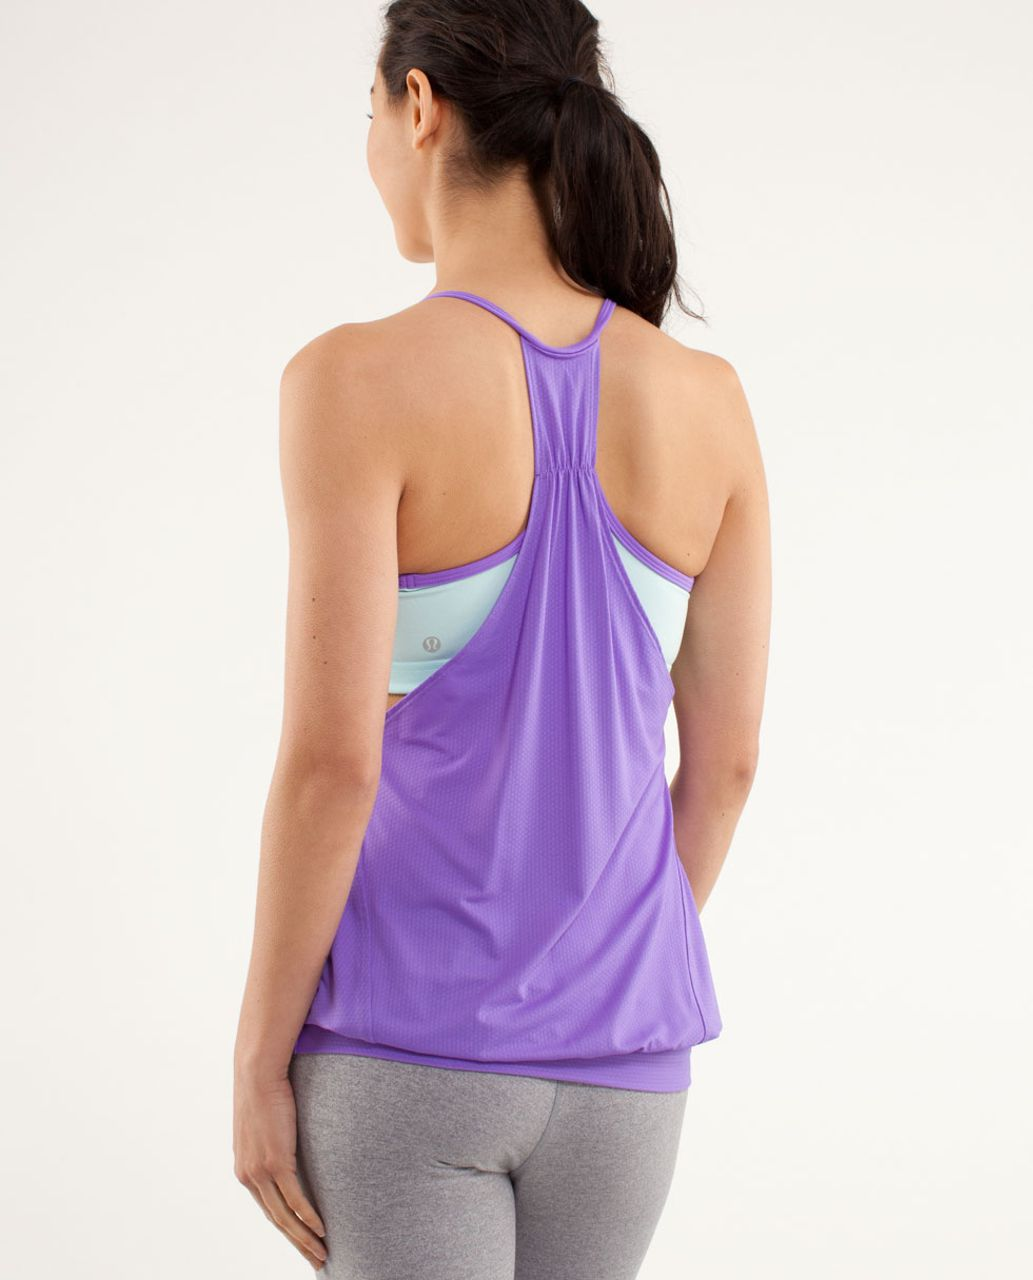 Lululemon No Limits Tank - Power Purple / Aquamarine